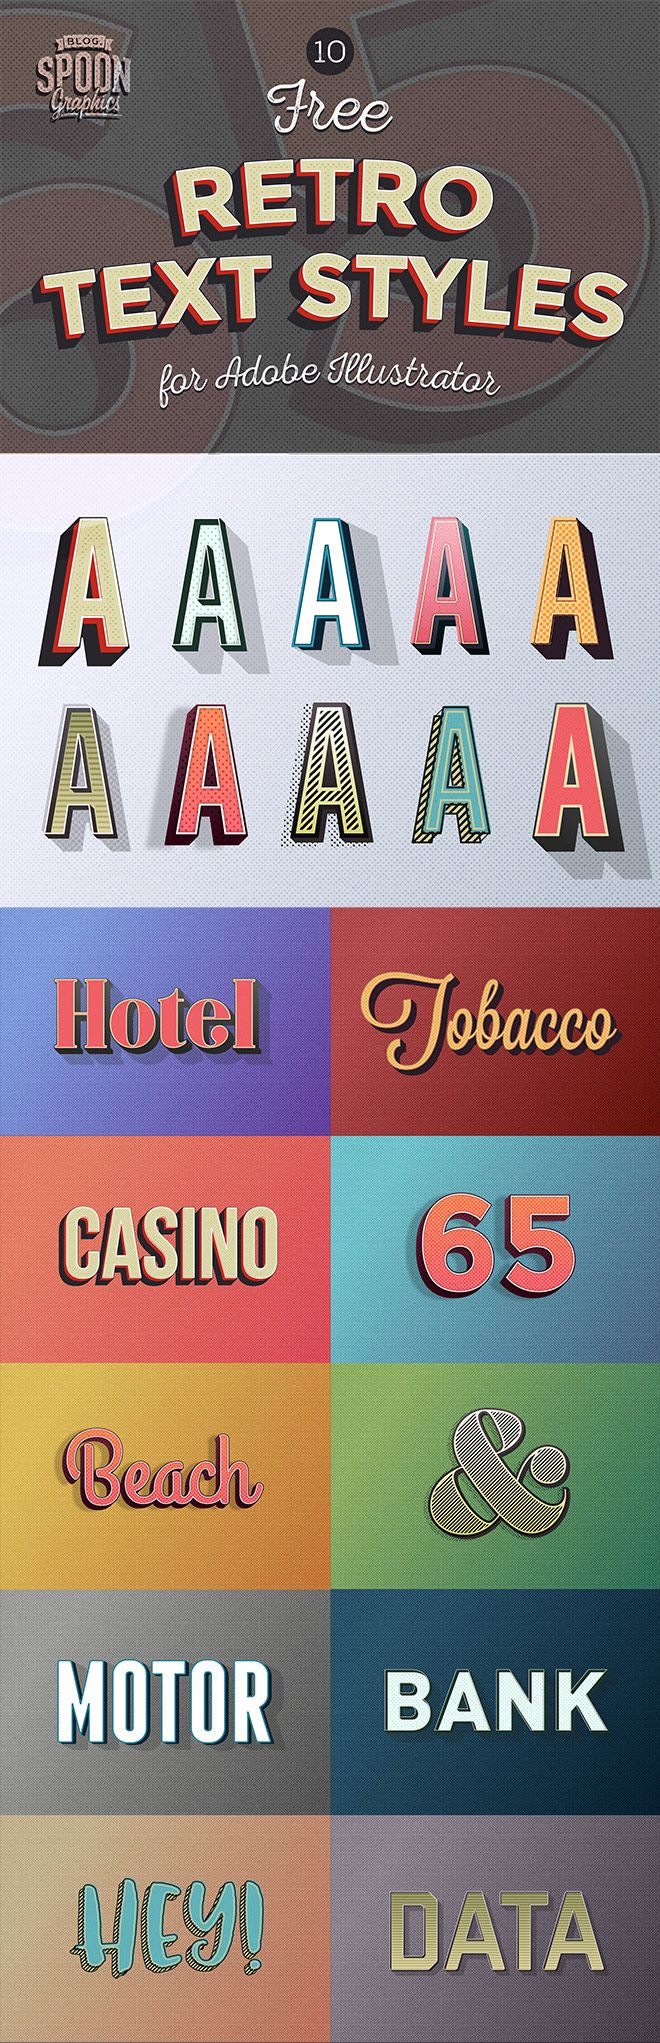 10 Free Retro Text Effect Graphic Styles for Adobe Illustrator |  Blog.SpoonGraphics by Chris Spooner